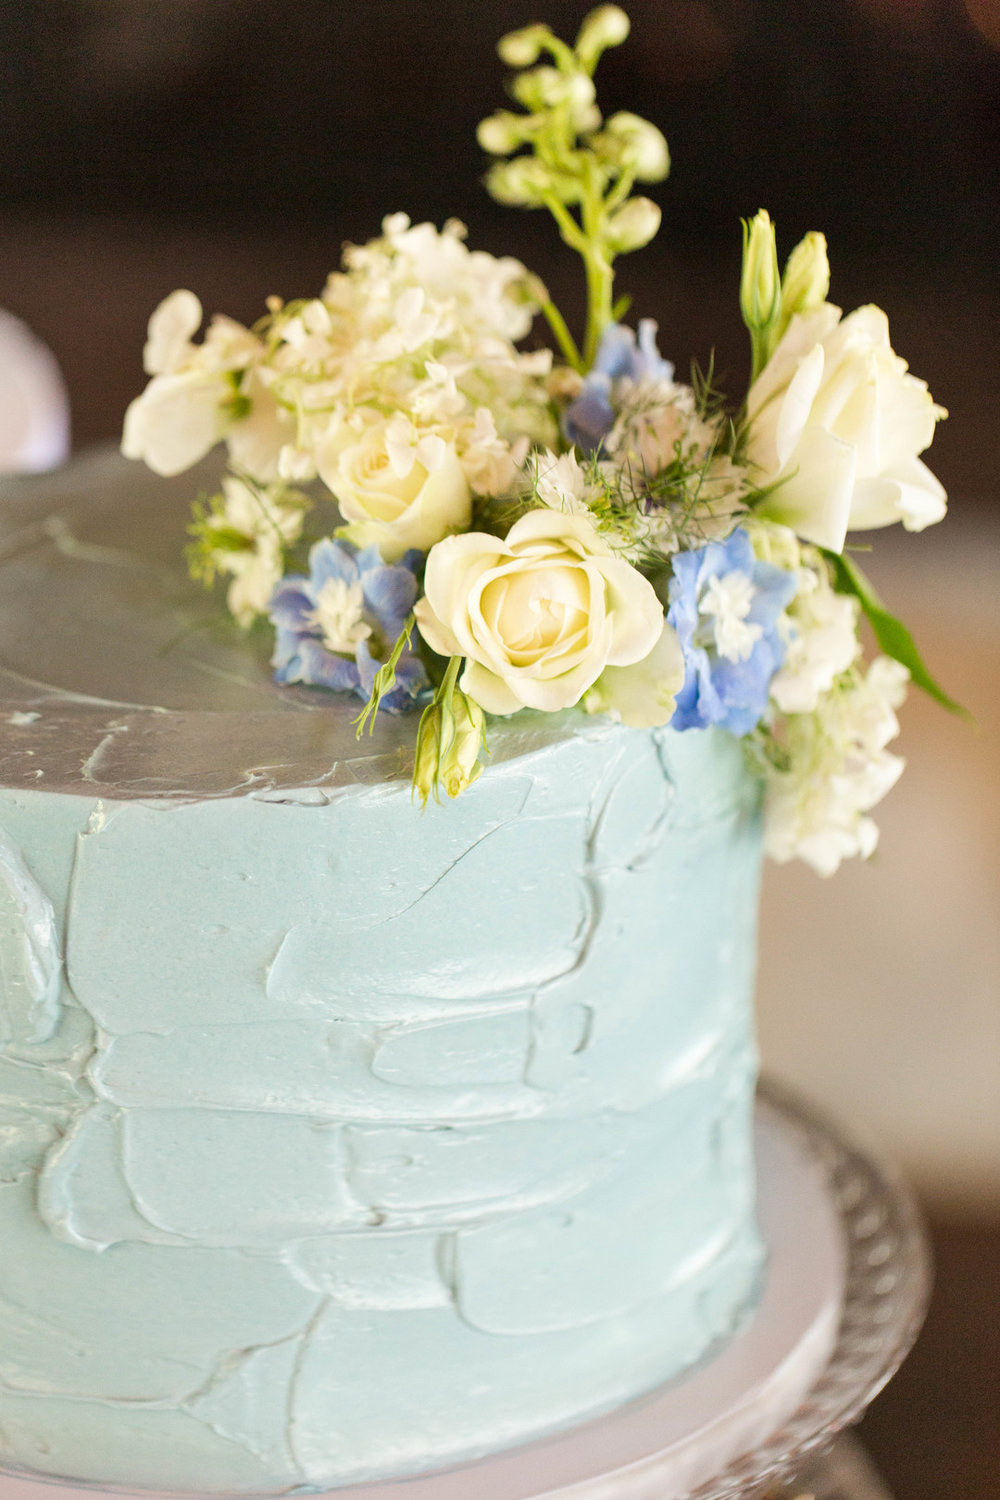 Baby Blue and White Rose One Tier Chicago Wedding Cake Hors d'oeuvres Chicago Wedding Reception Meghan McCarthy Photography